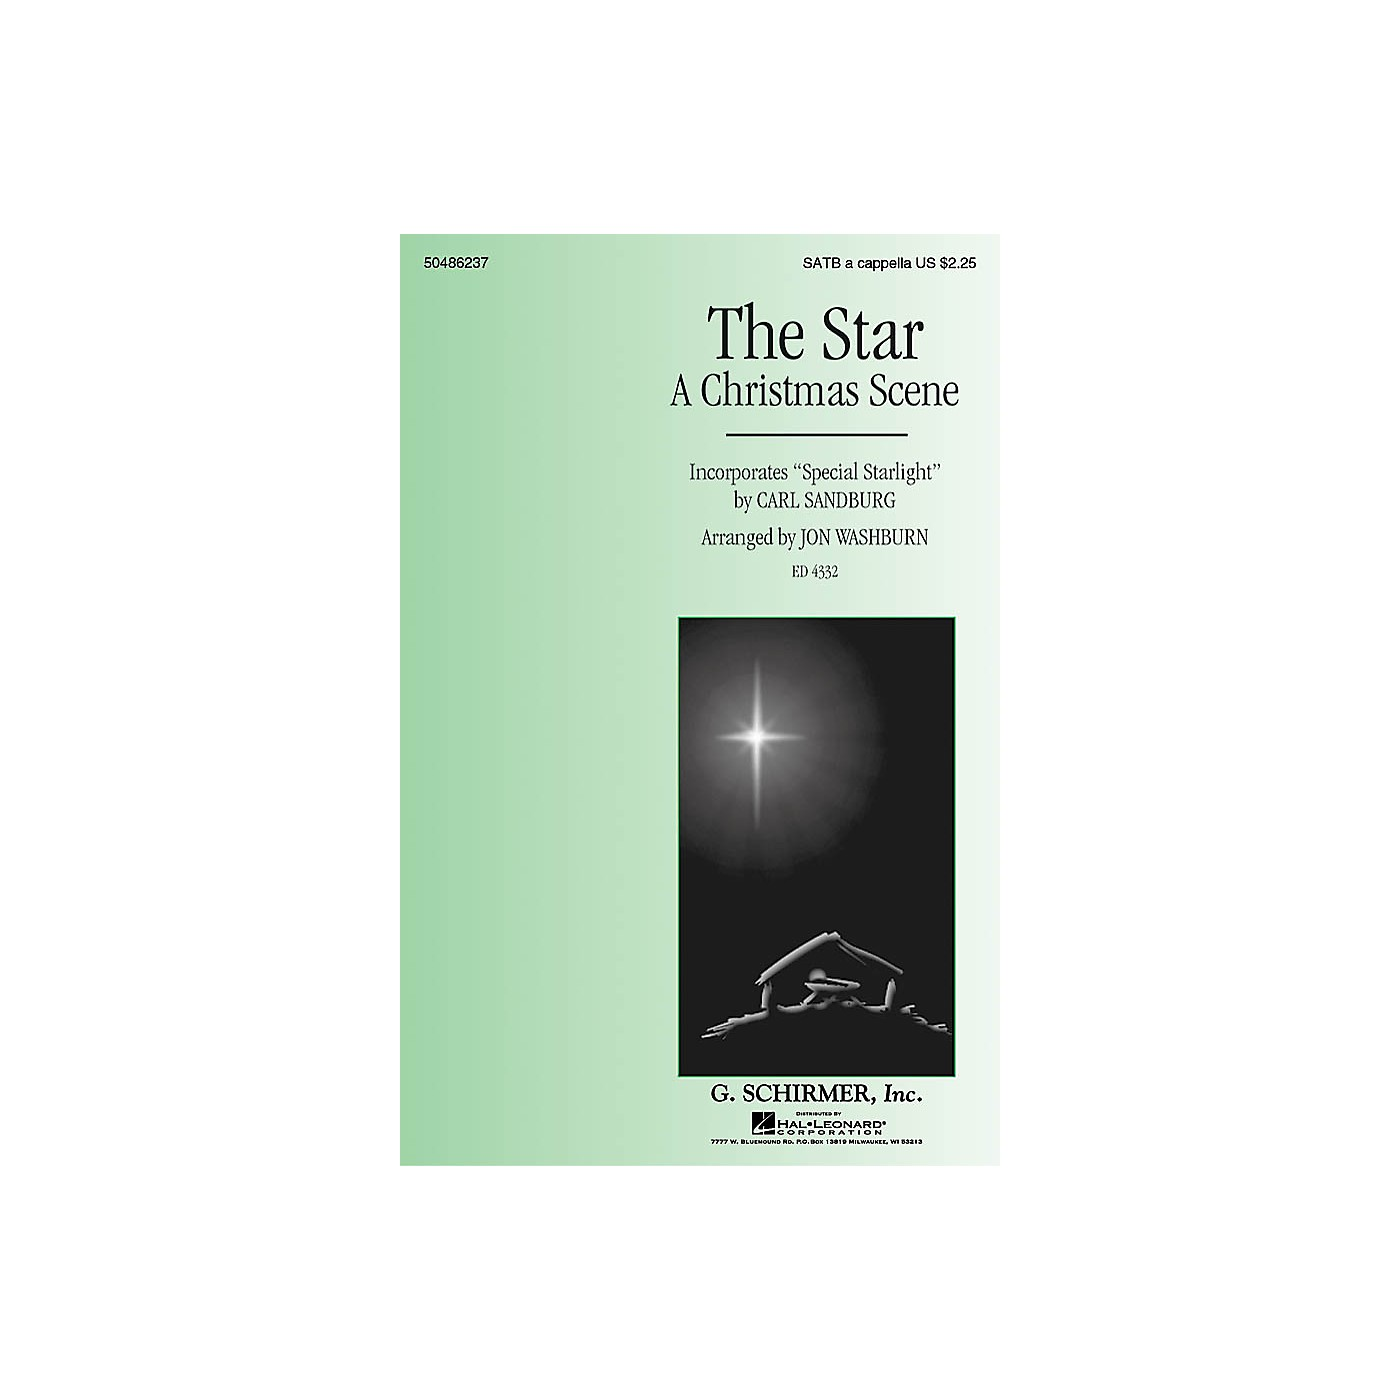 G. Schirmer The Star (A Christmas Scene) - Incorporates Special Starlight SATB a cappella by Jon Washburn thumbnail